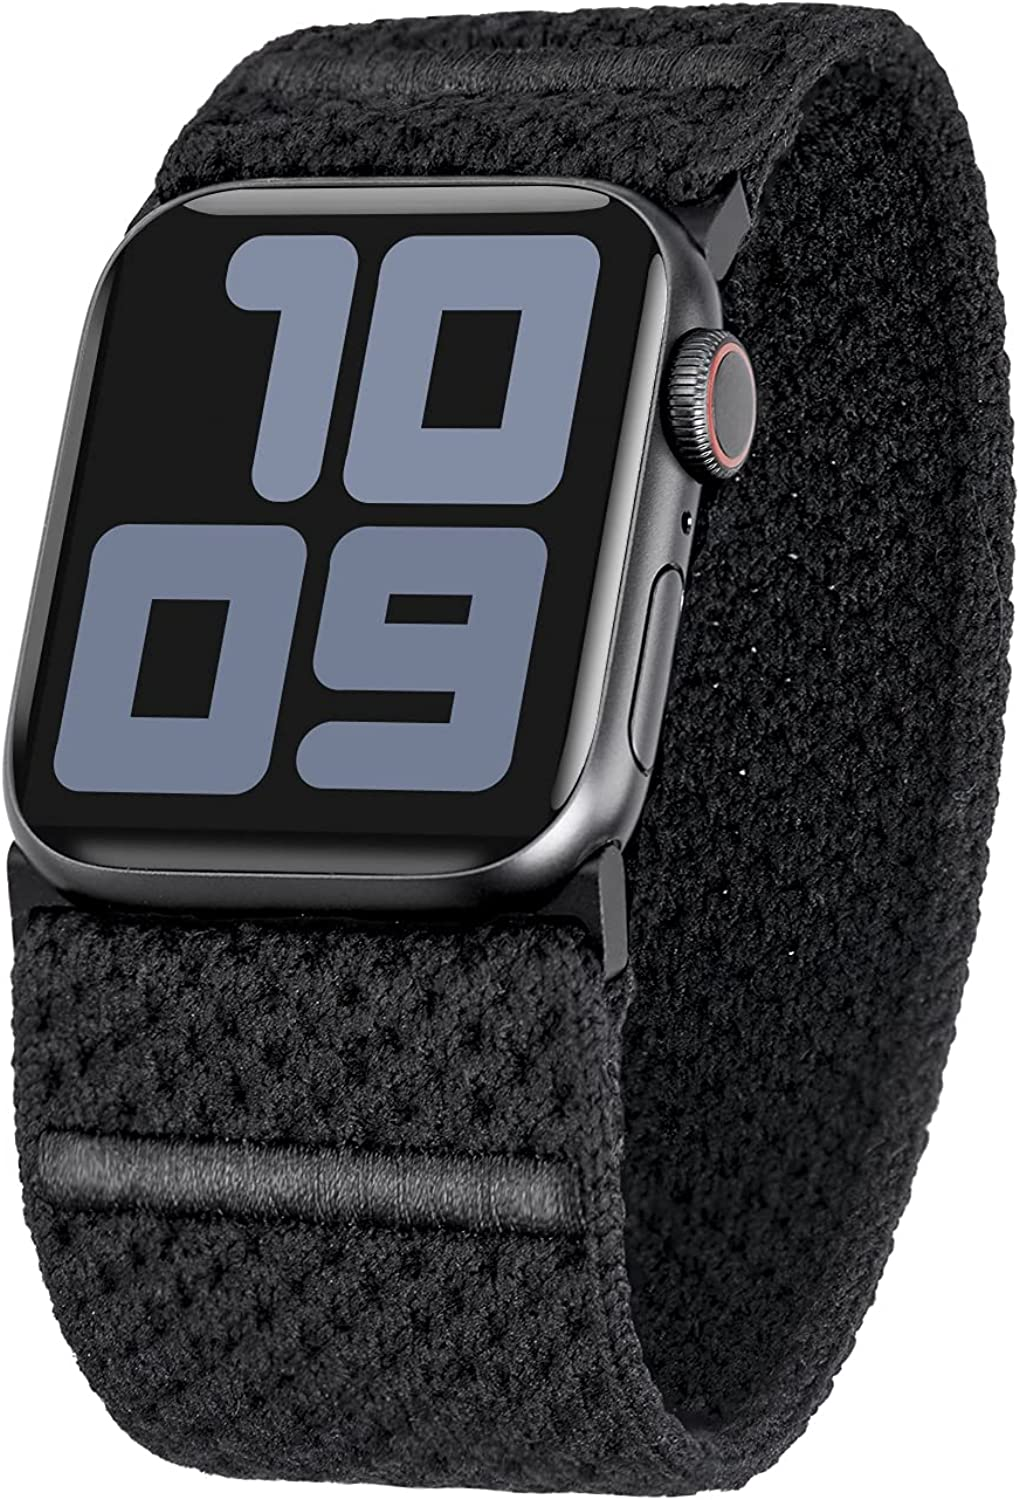 Tefeca Air Series Ultra Wide Breathable Knit Sport Band for Apple Watch